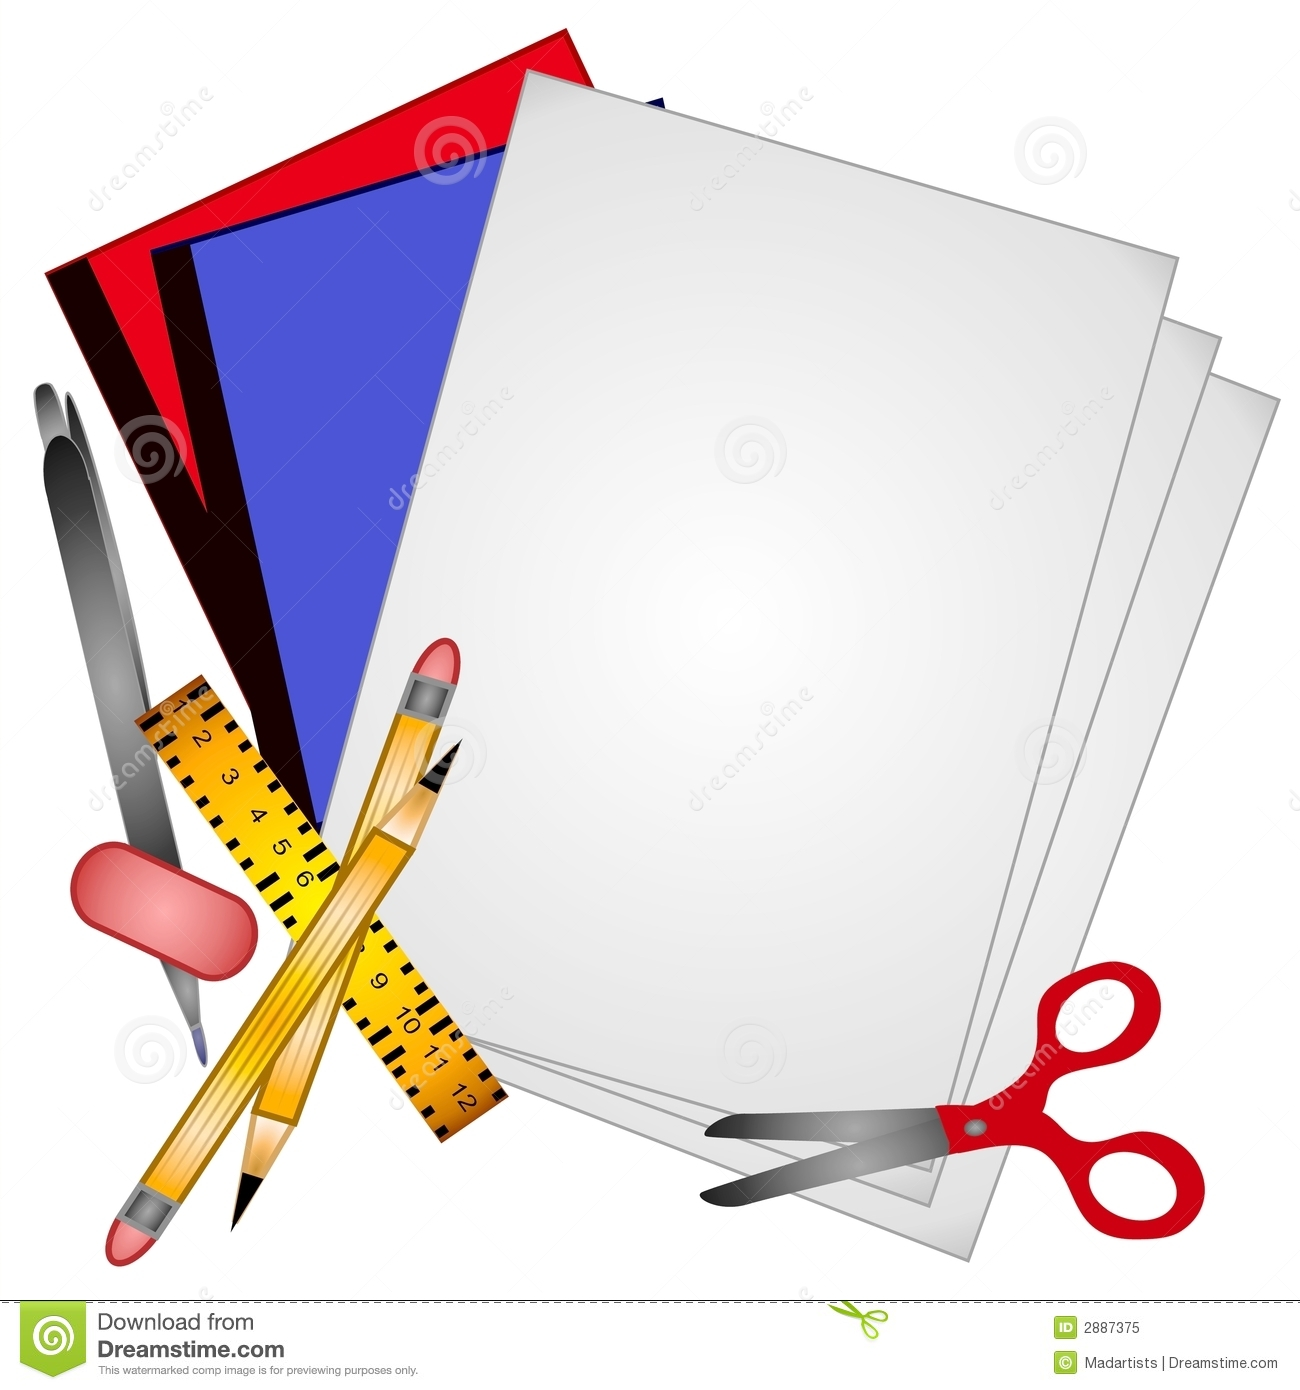 Pen clipart school supply Clip Free Clip Things Download